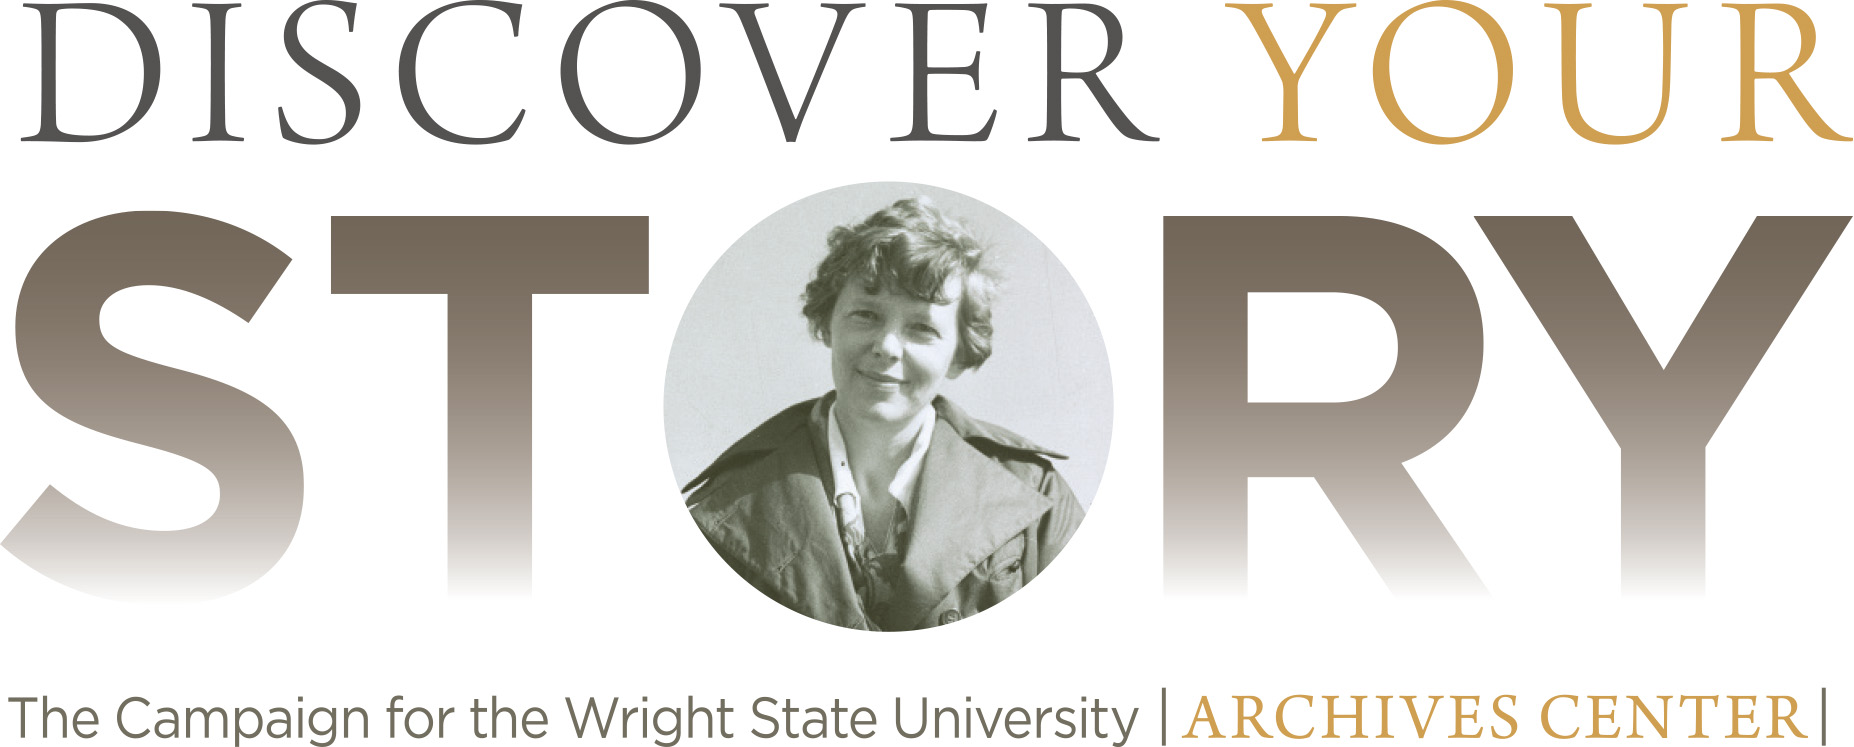 The Campaign for Wright State University | Archives Center